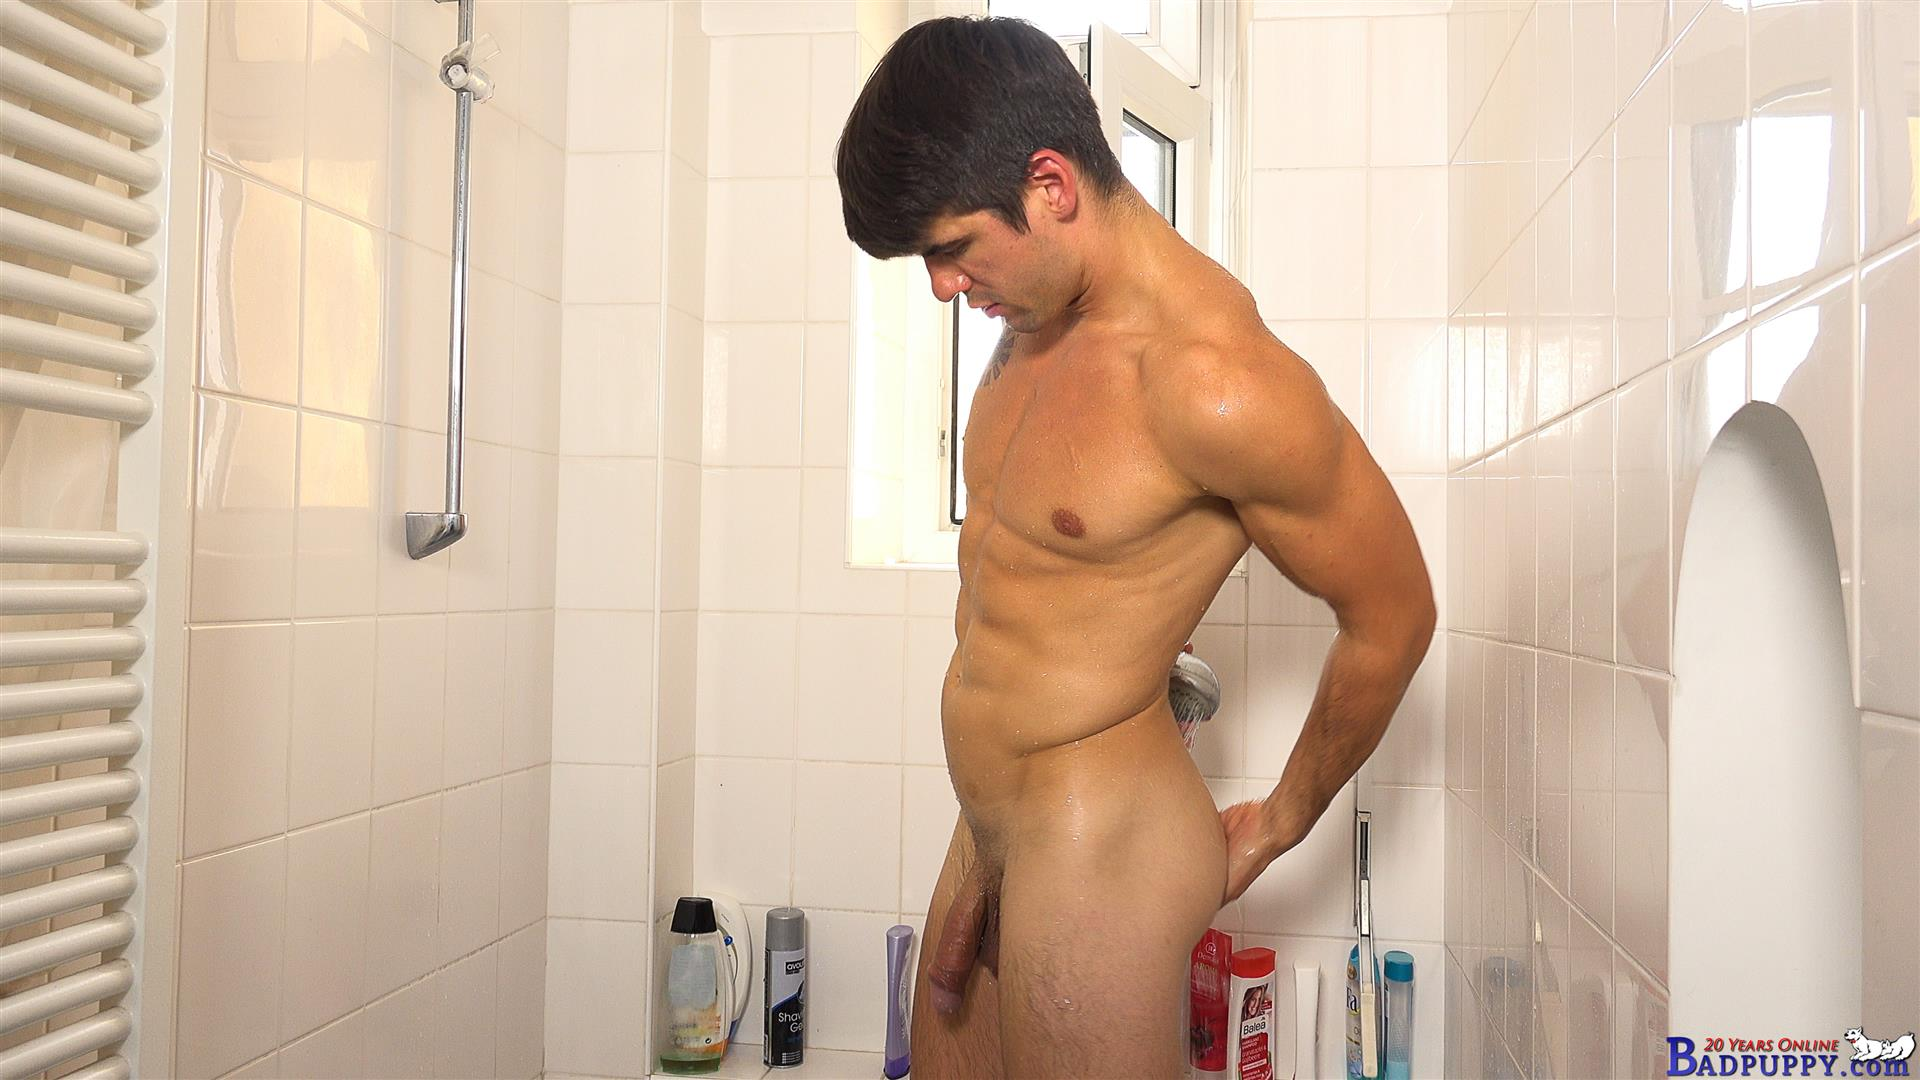 Badpuppy-Milan-Pis-Straight-Guy-With-Big-Uncut-Cock-Masturbating-Amateur-Gay-Porn-26 Straight Italian Banker Masturbating His Big Uncut Cock